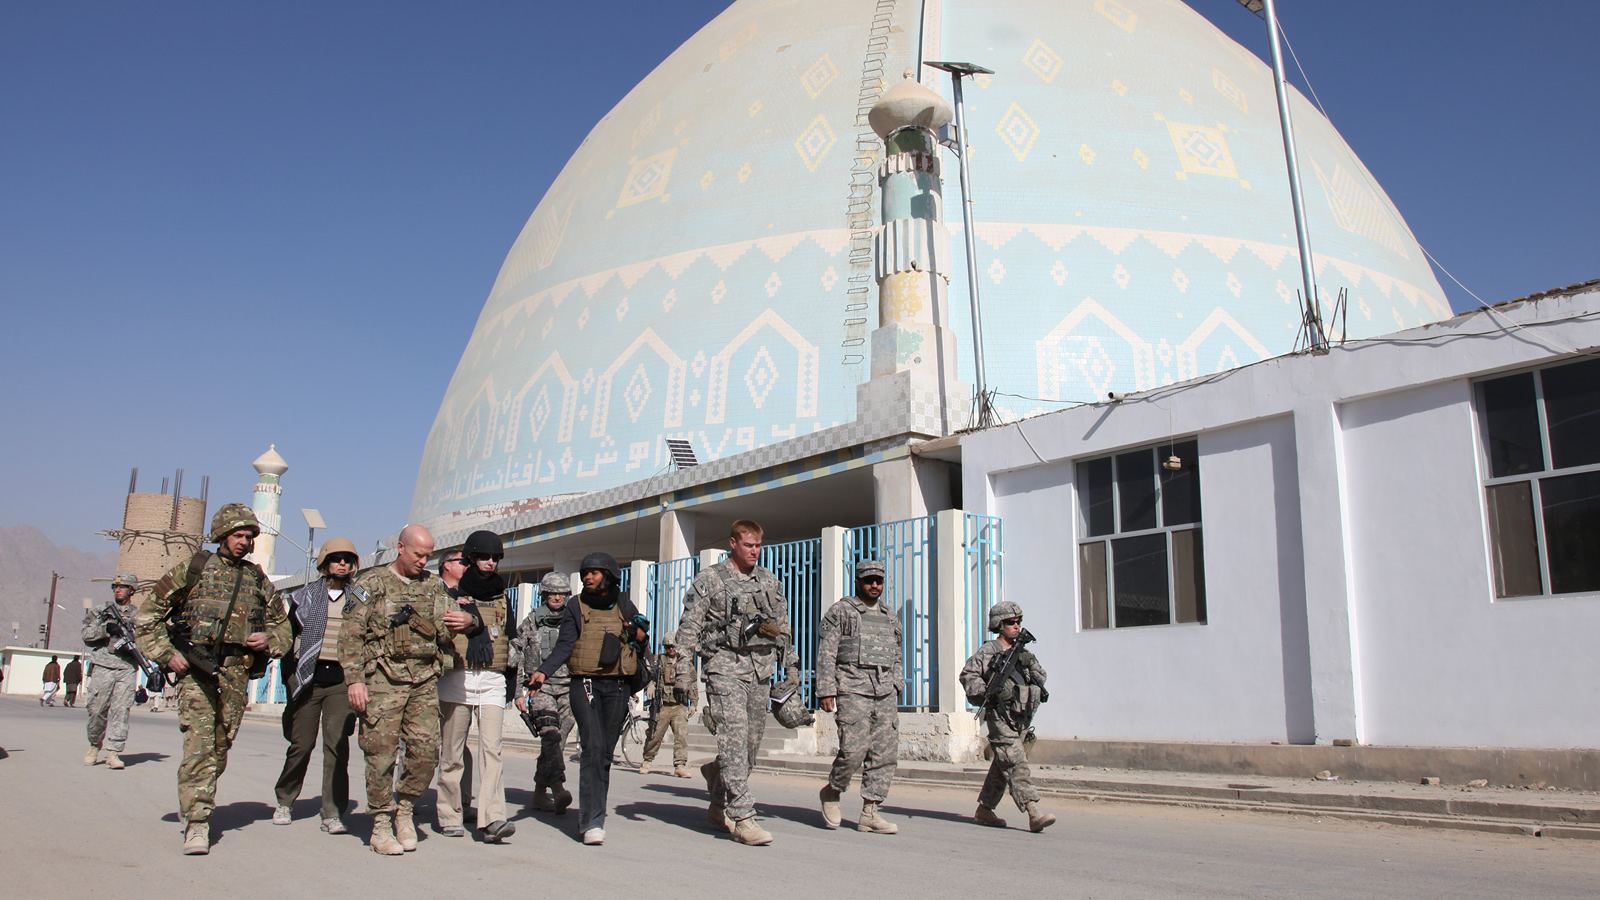 A Multinational Group of Soliders Walks in Front of a Mosque in Kandahar, Afghanistan